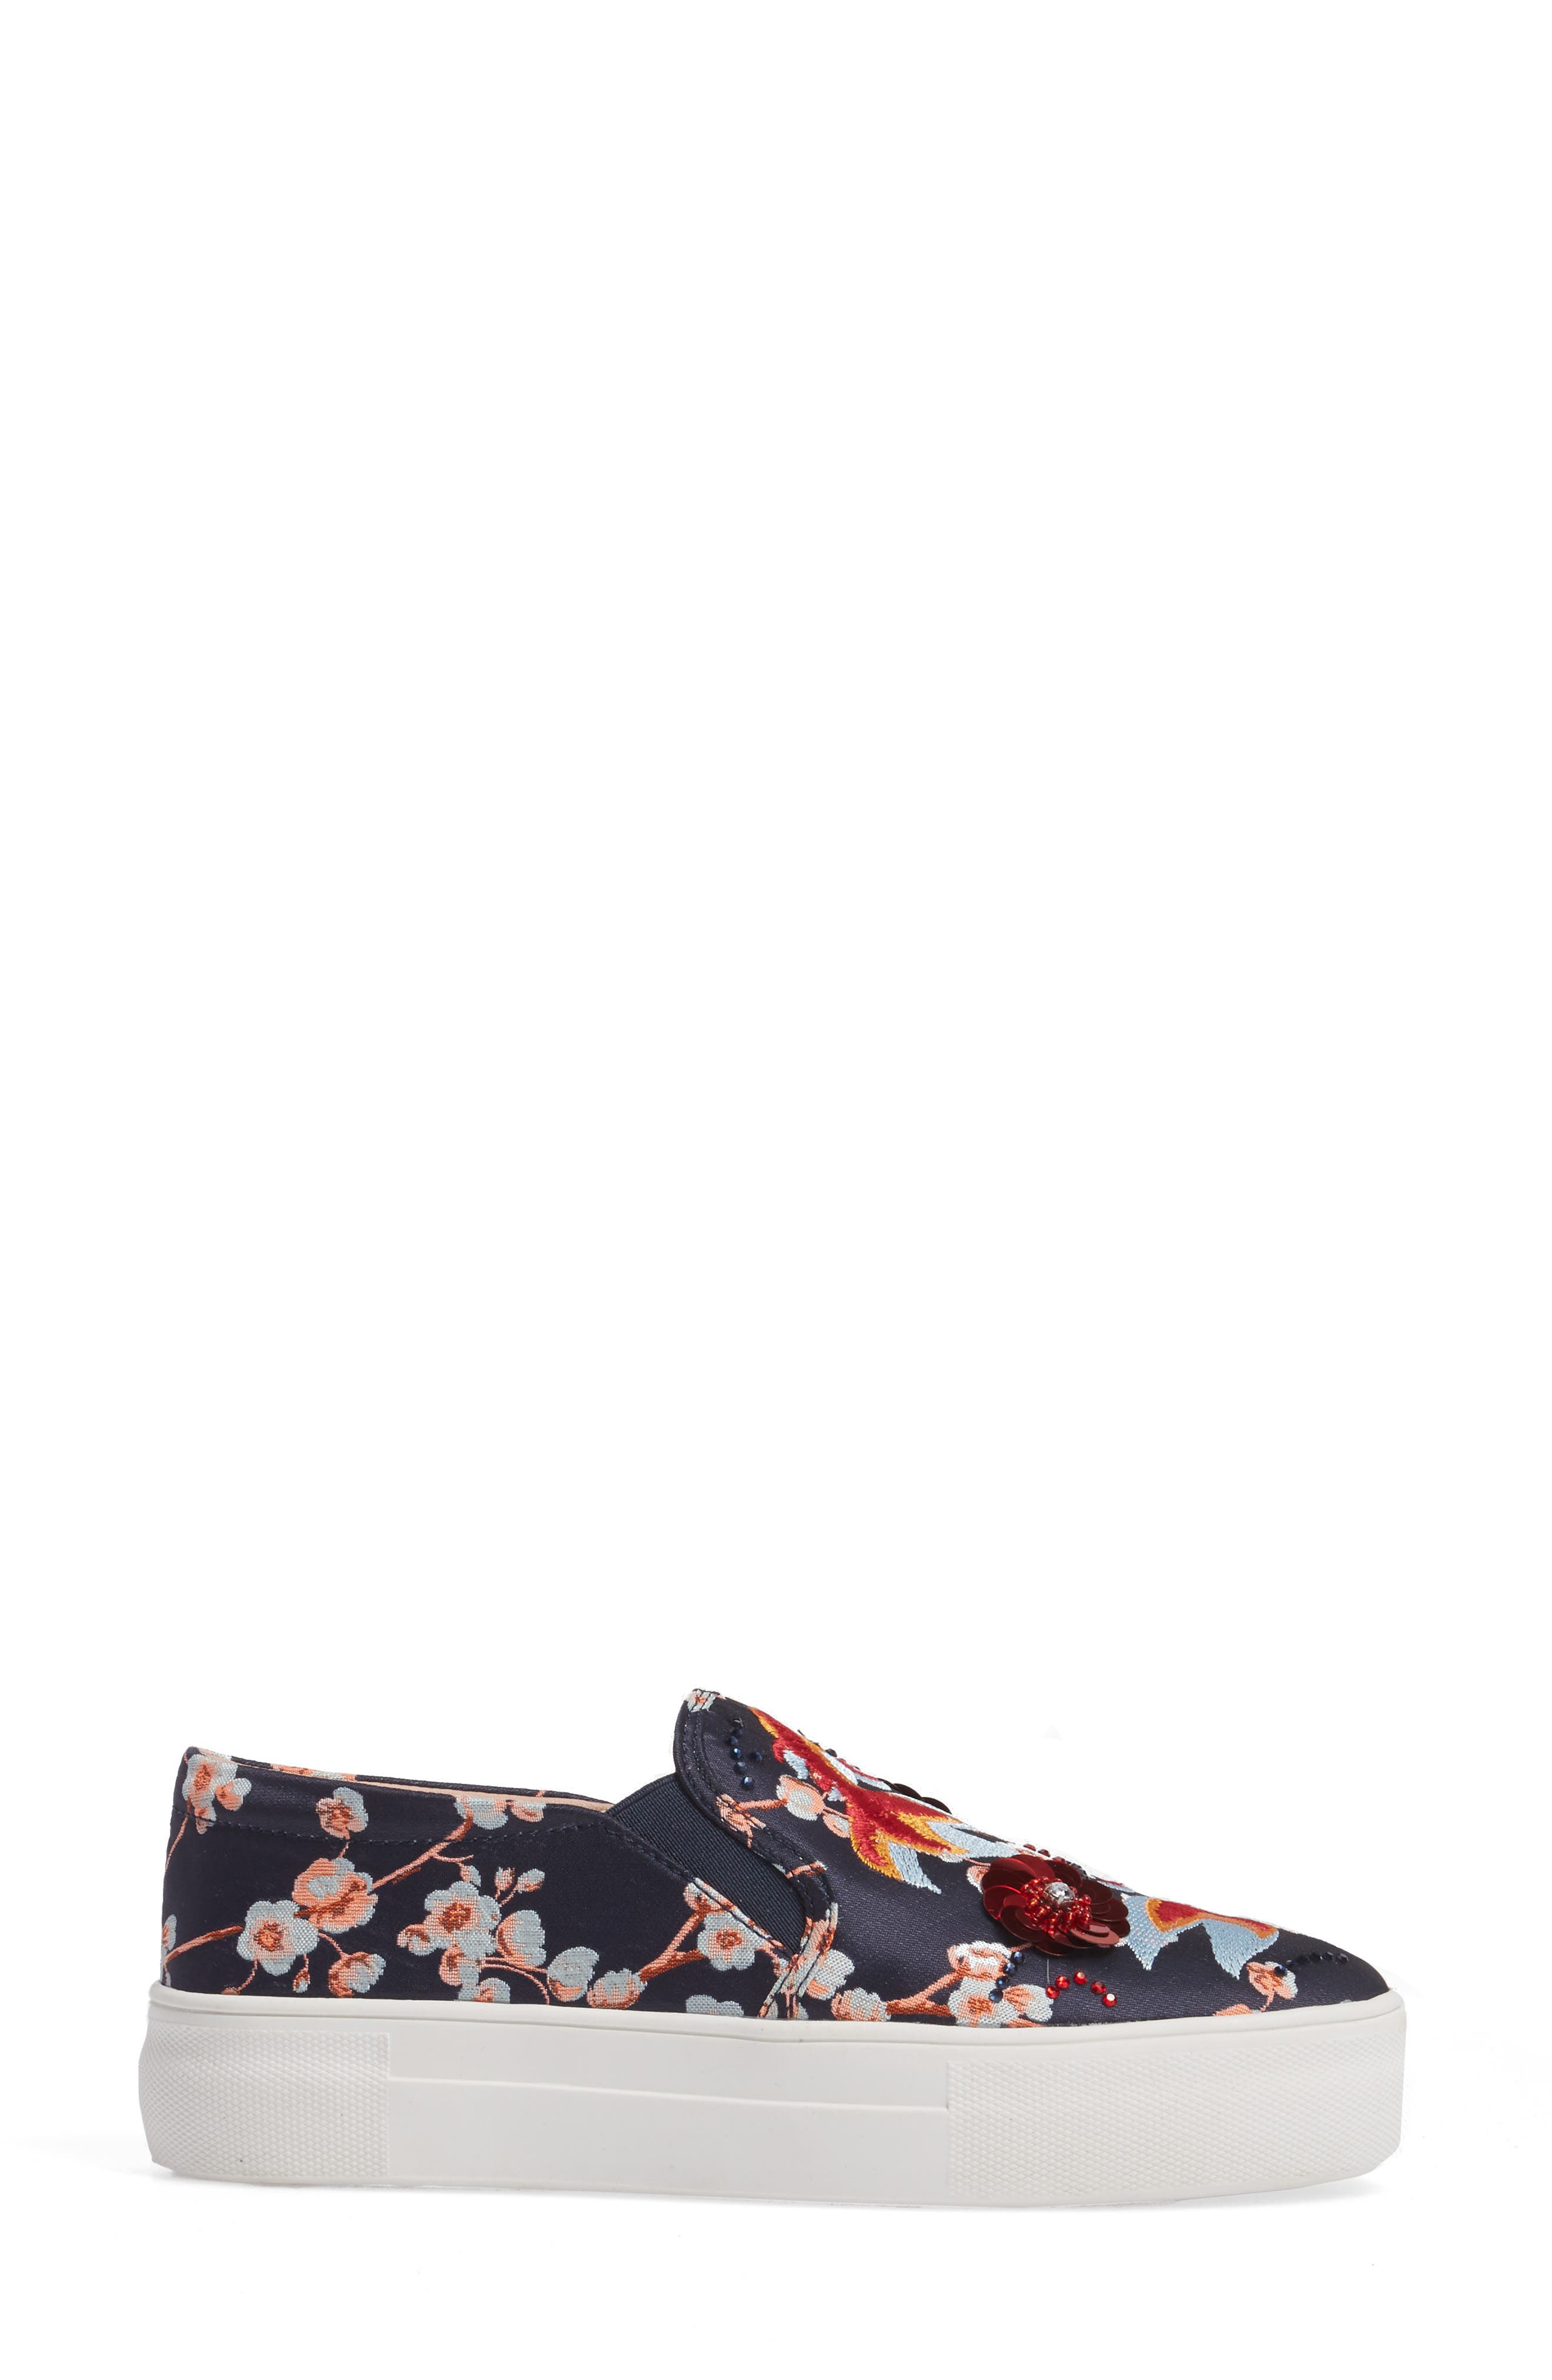 Theory Goldfish Embellished Slip-On Sneaker,                             Alternate thumbnail 3, color,                             001